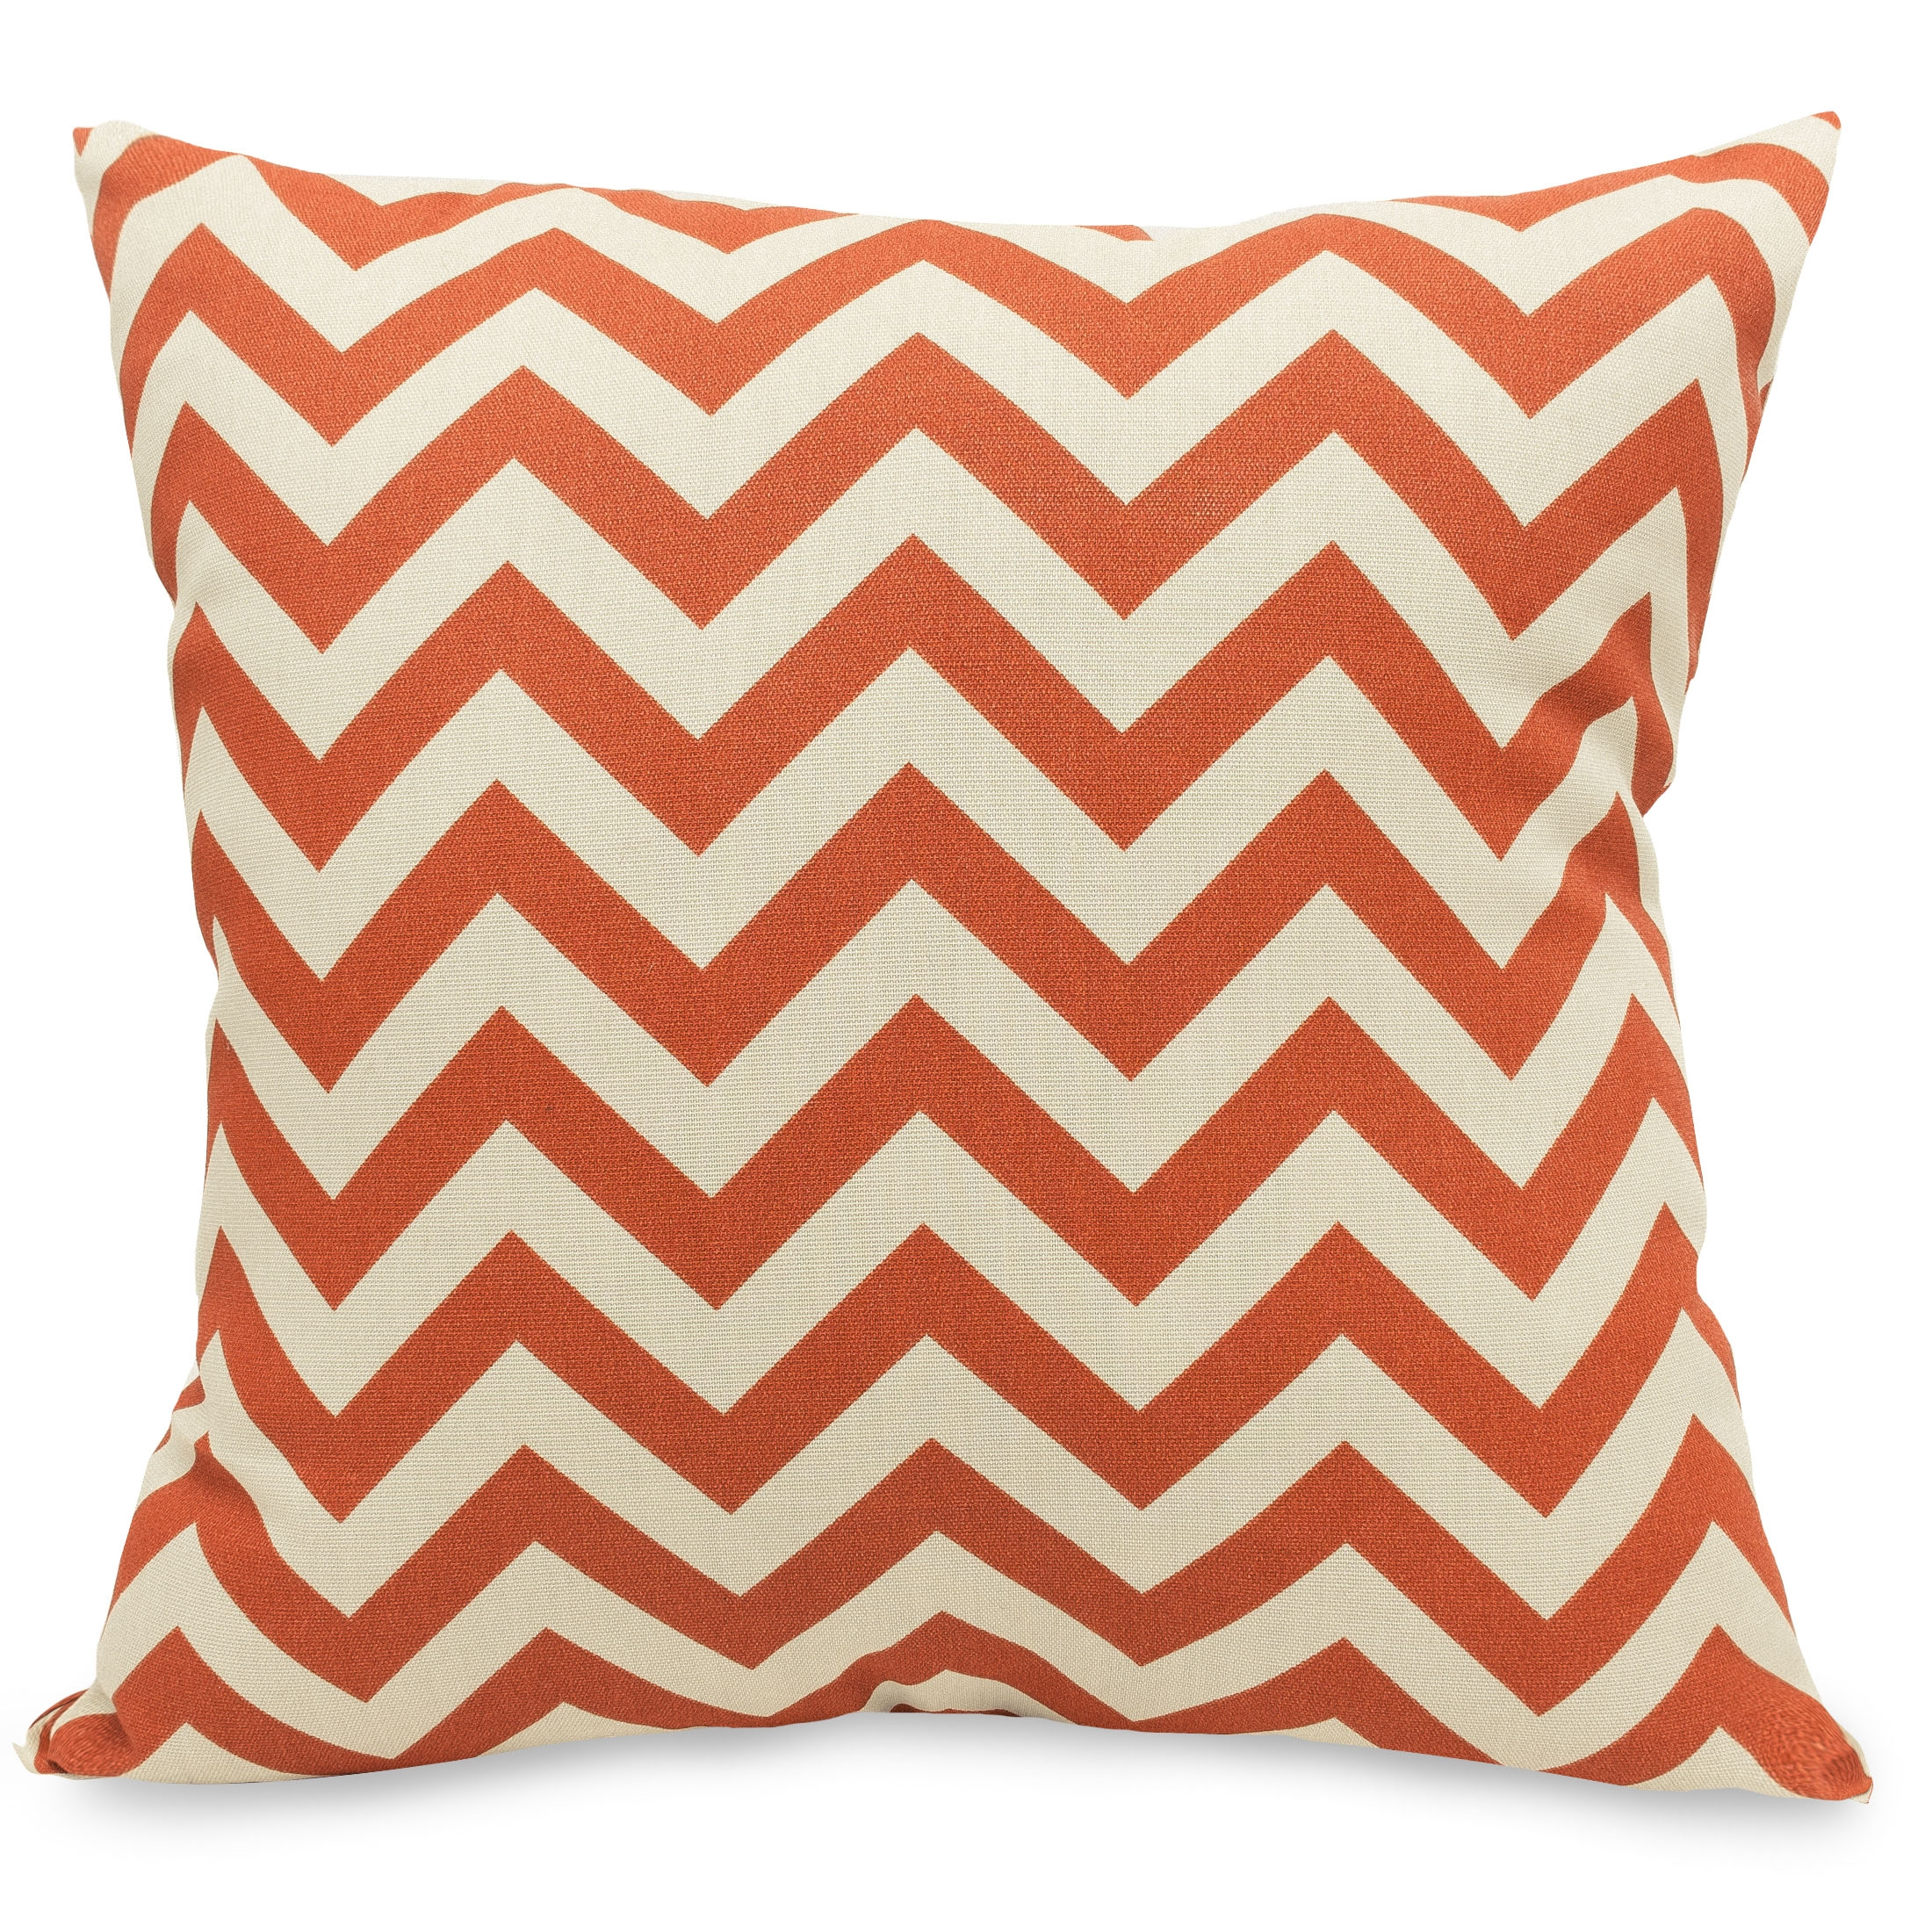 zig zag pattern sofa pillows